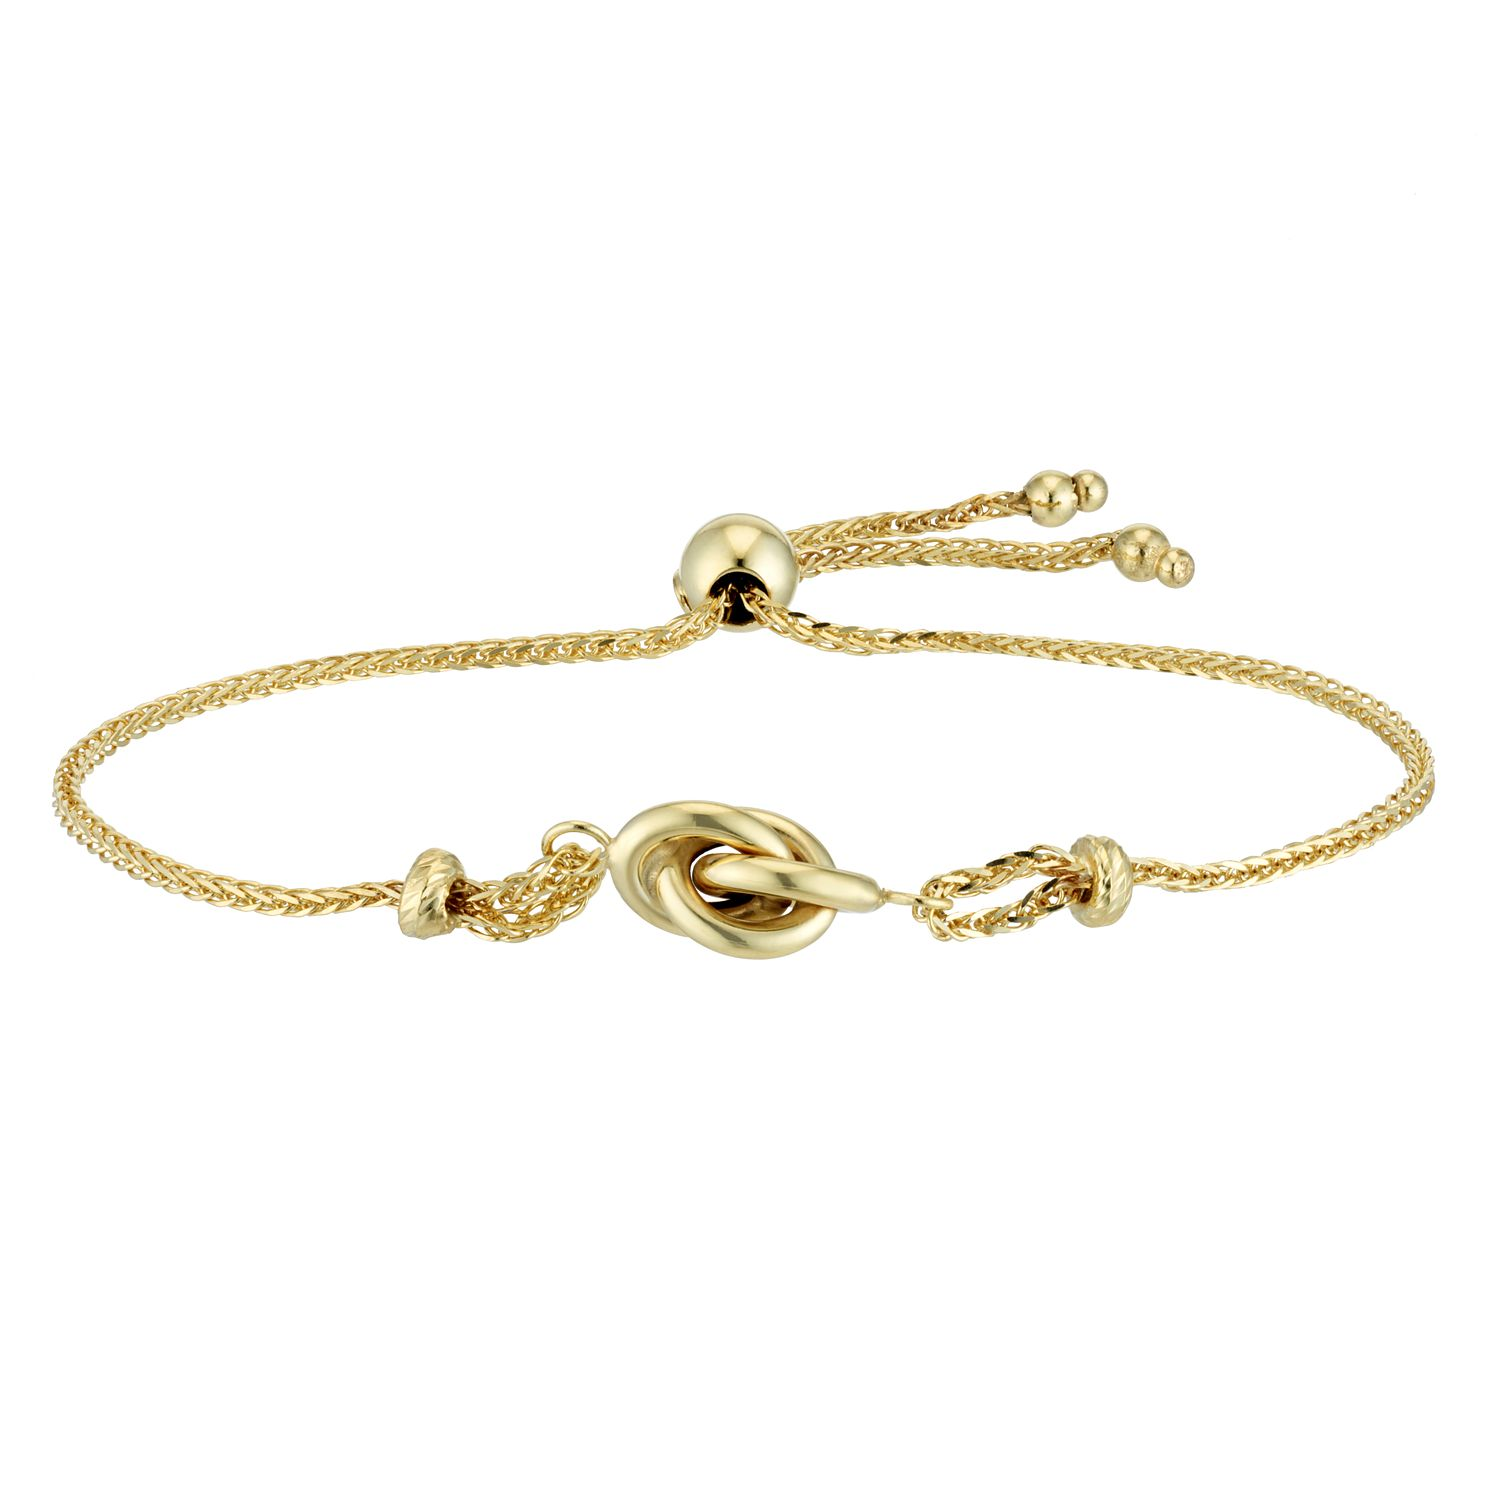 9ct Yellow Gold Knot Adjustable Bracelet - Product number 4518306